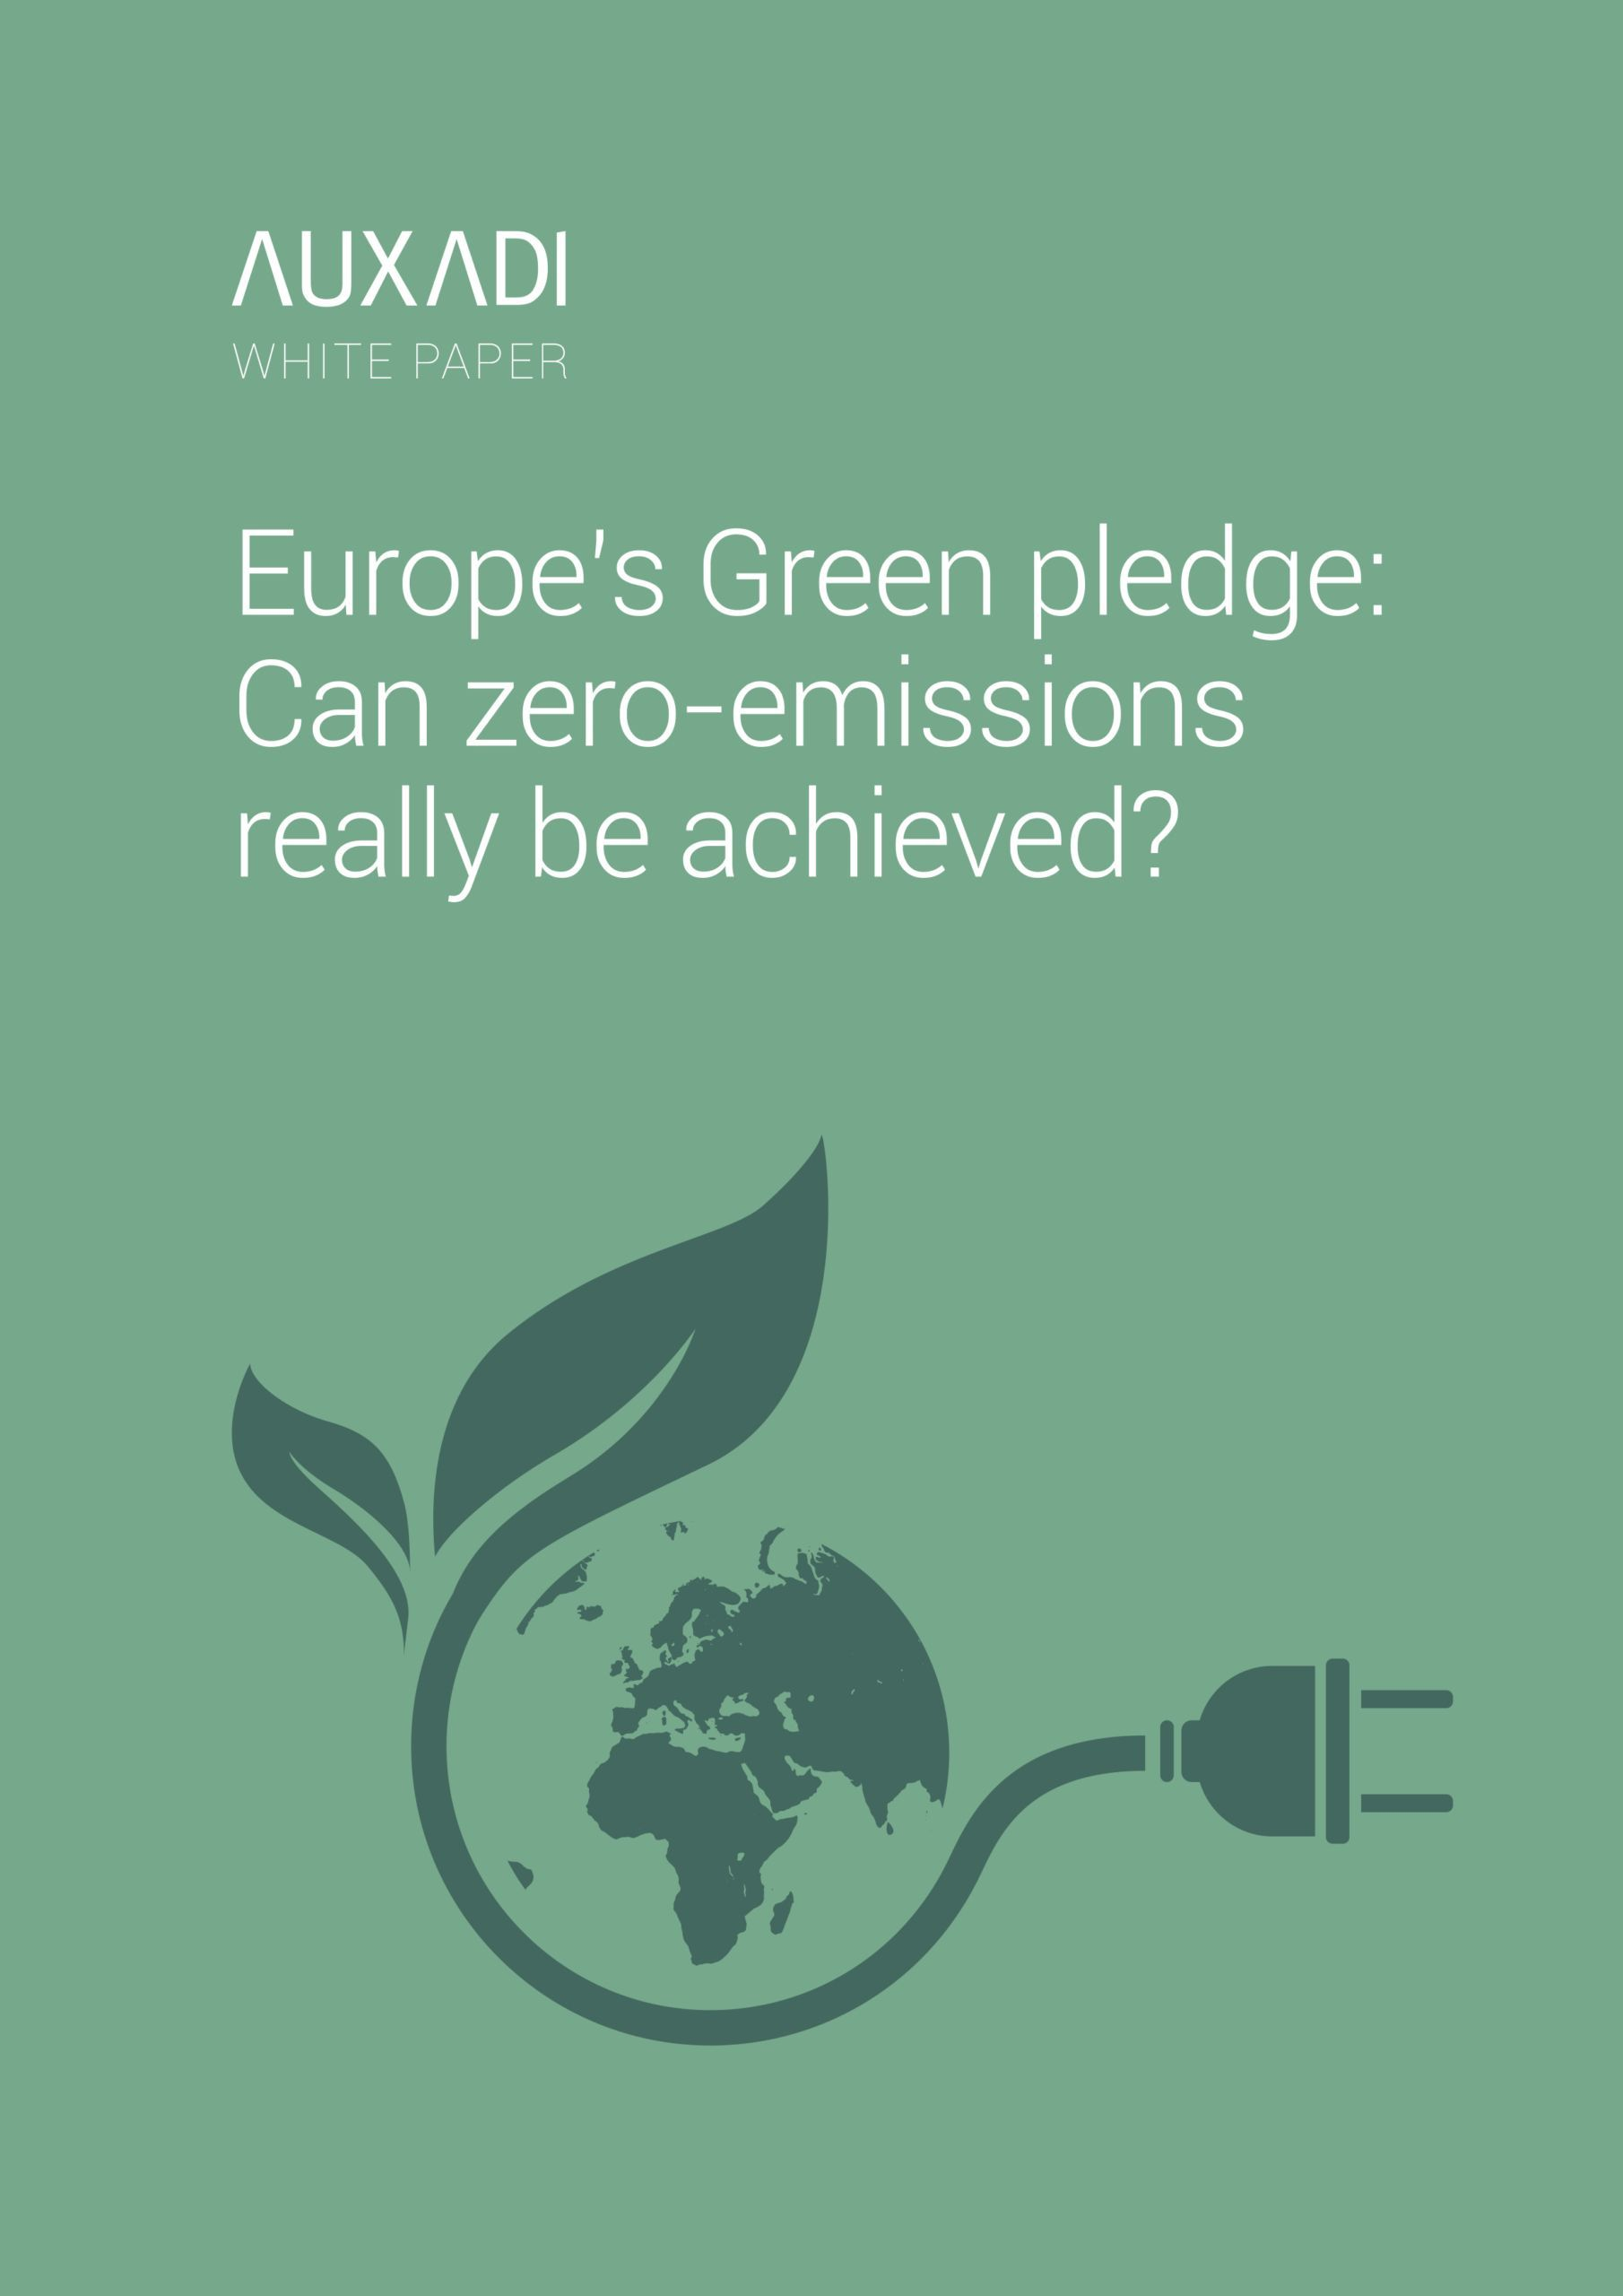 Europe's Green pledge: Can zero-emissions really be achieved?